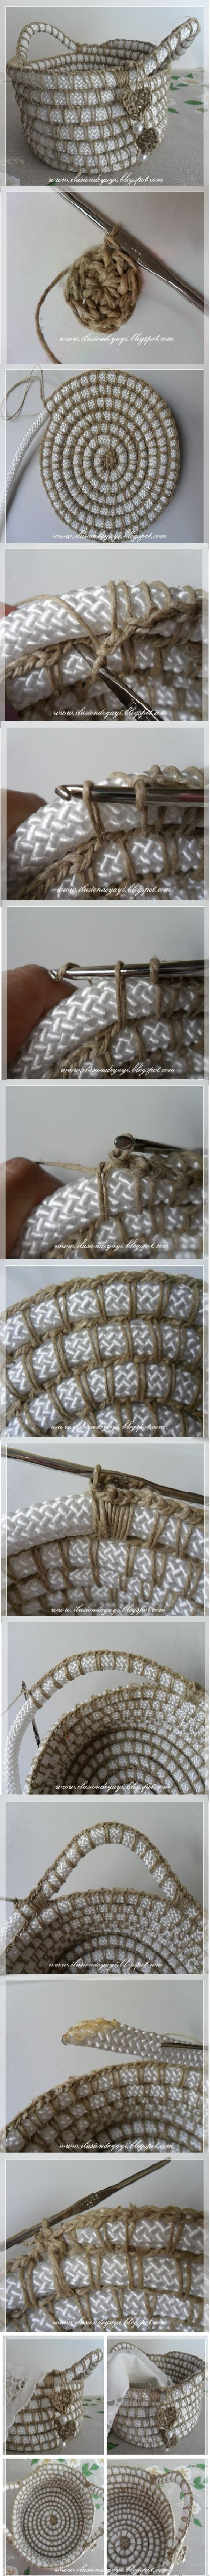 Crochet and rope basket - tutorial